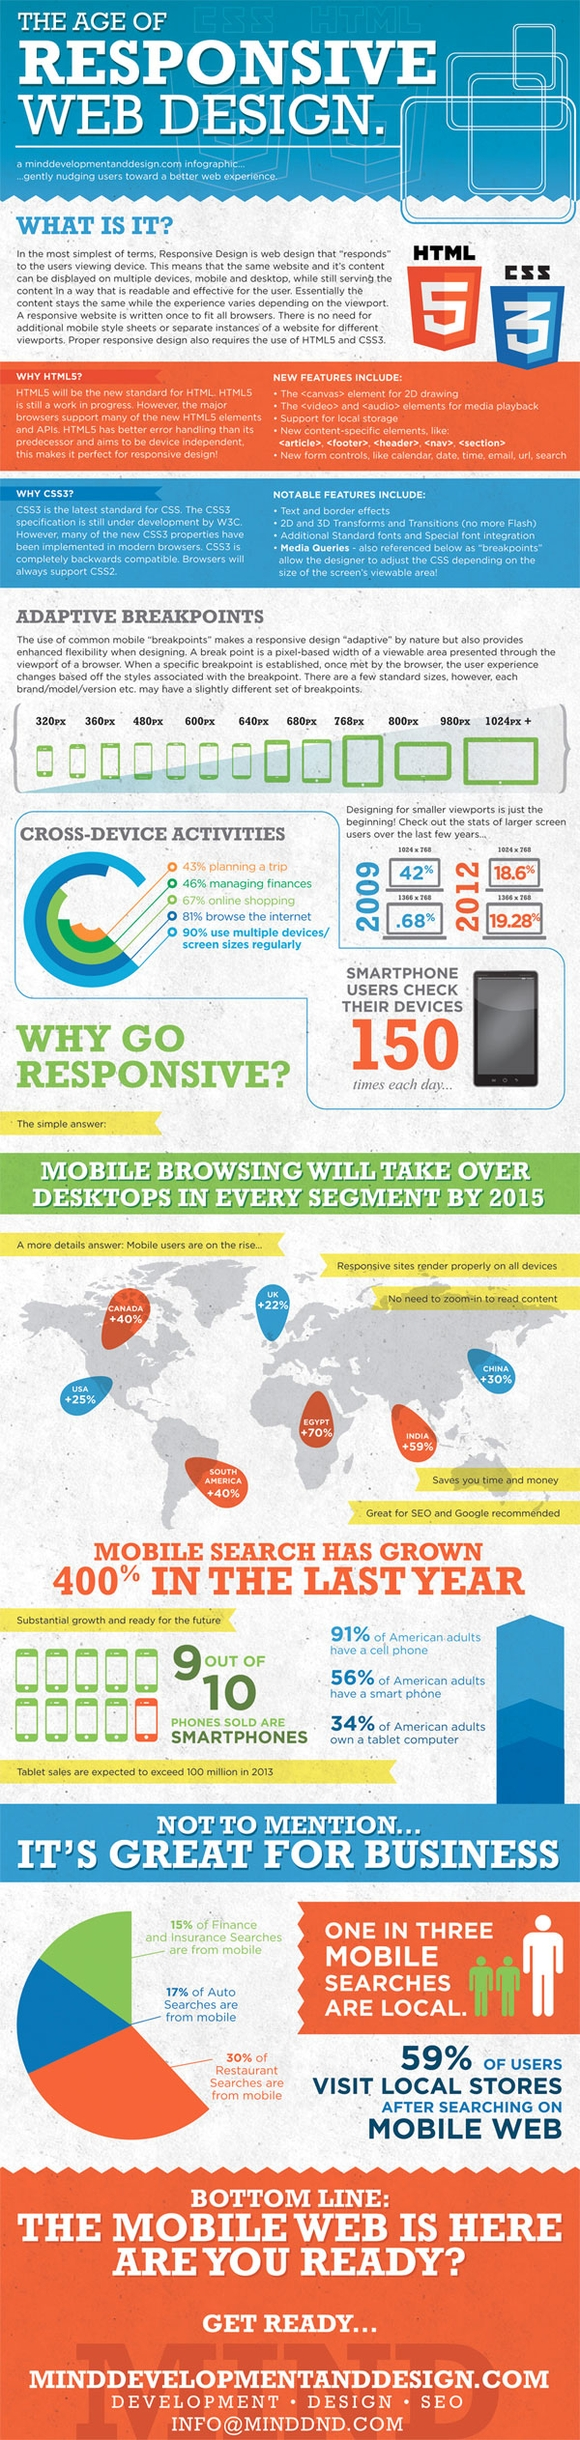 The Age of Responsive Web Design - web design